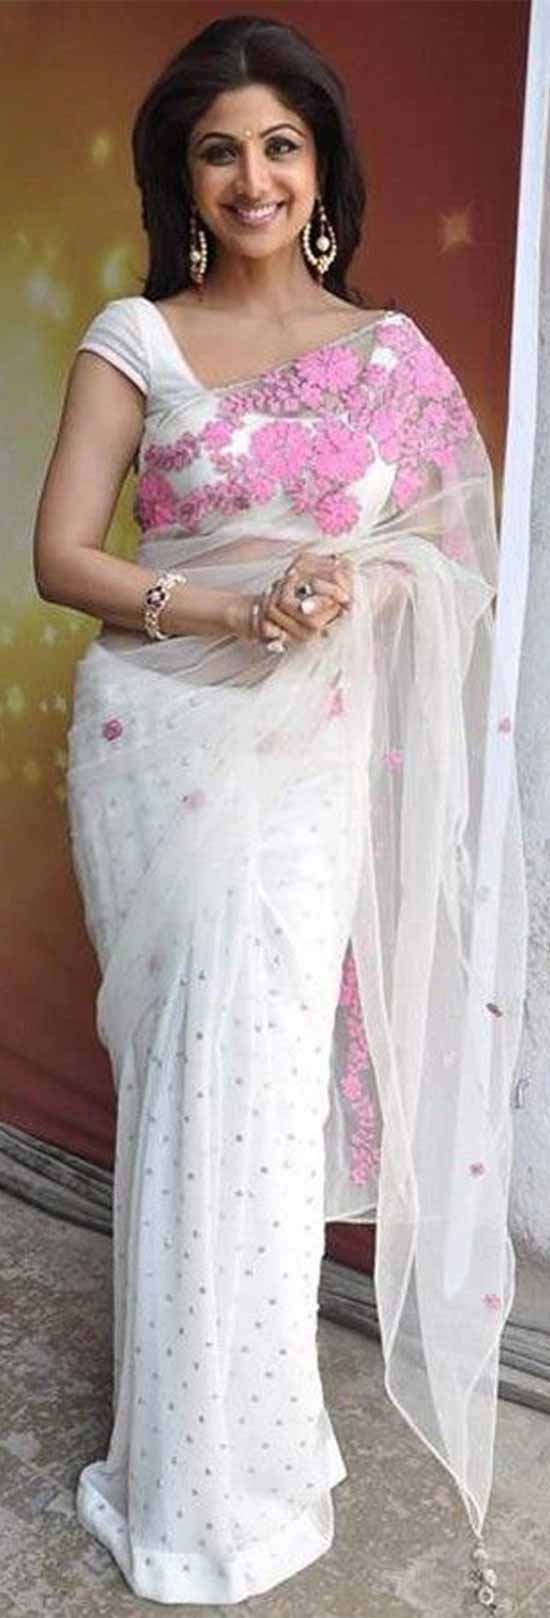 Shilpa-Shetty-White-Net-with-Pink-Work-Replica-Saree-Fabric